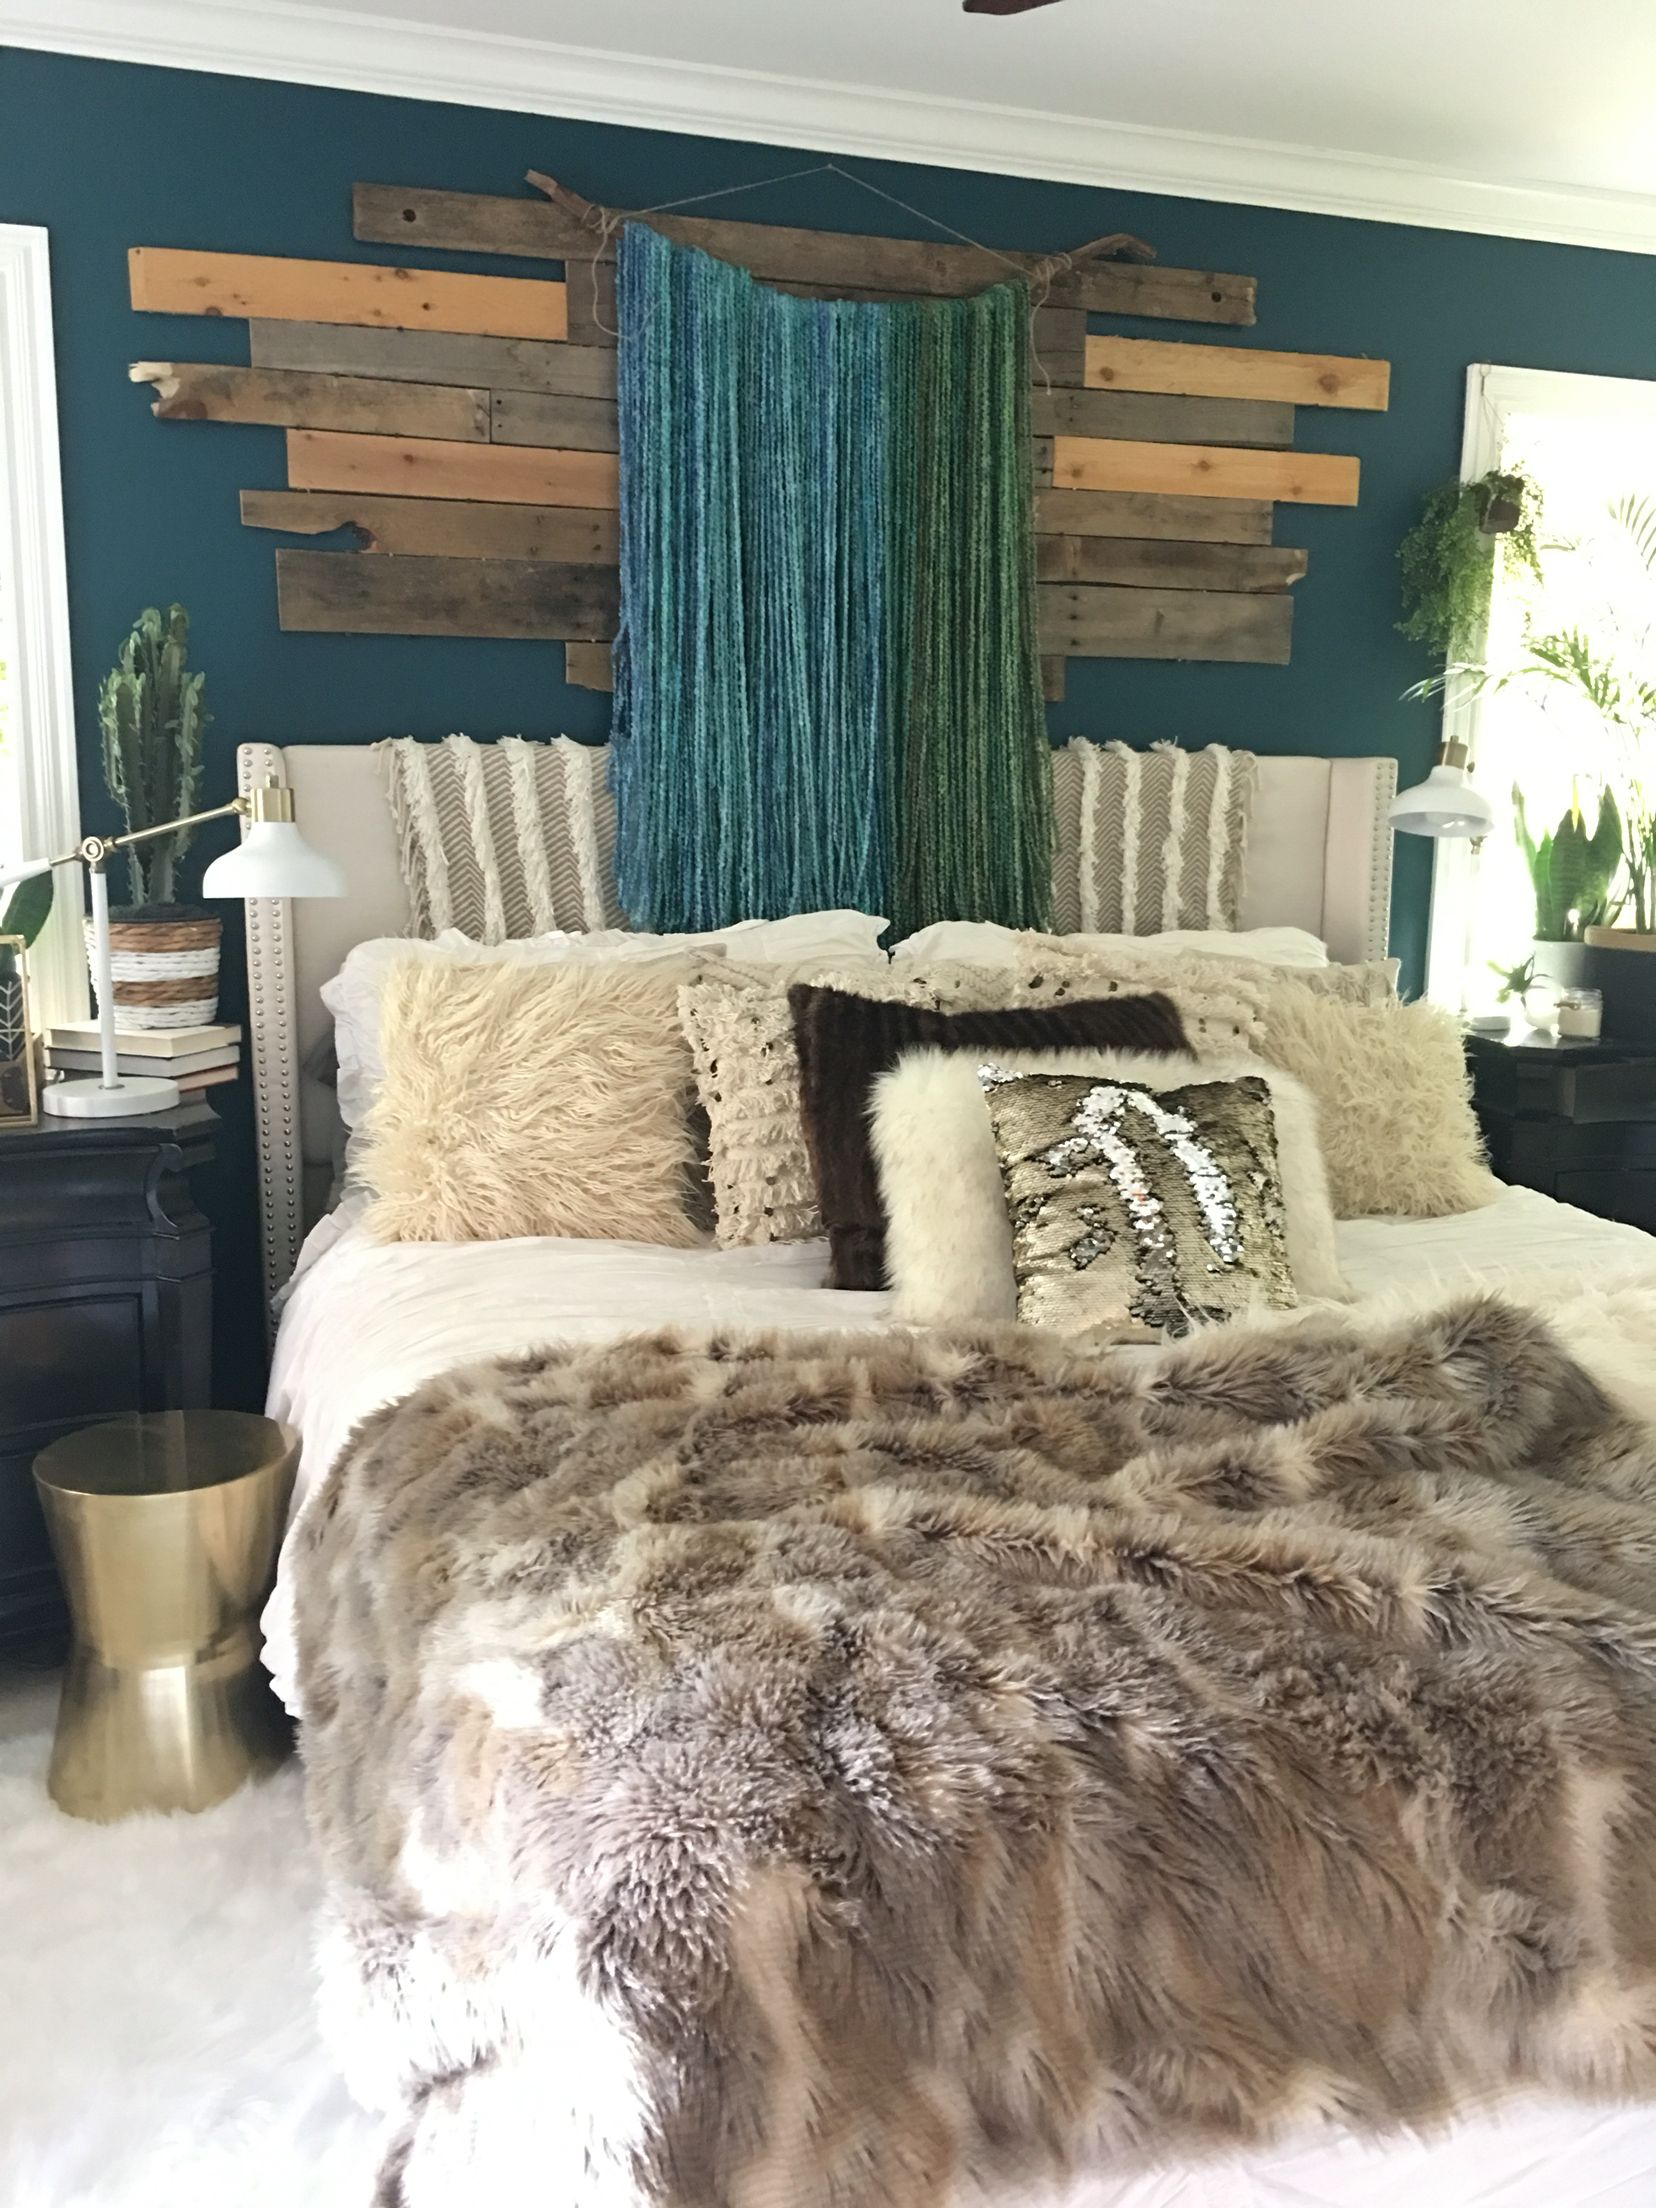 Boho Glam Bedroom By Blissfully Eclectic Ocean Abyss Creative Home Ideas Pinterest Glam